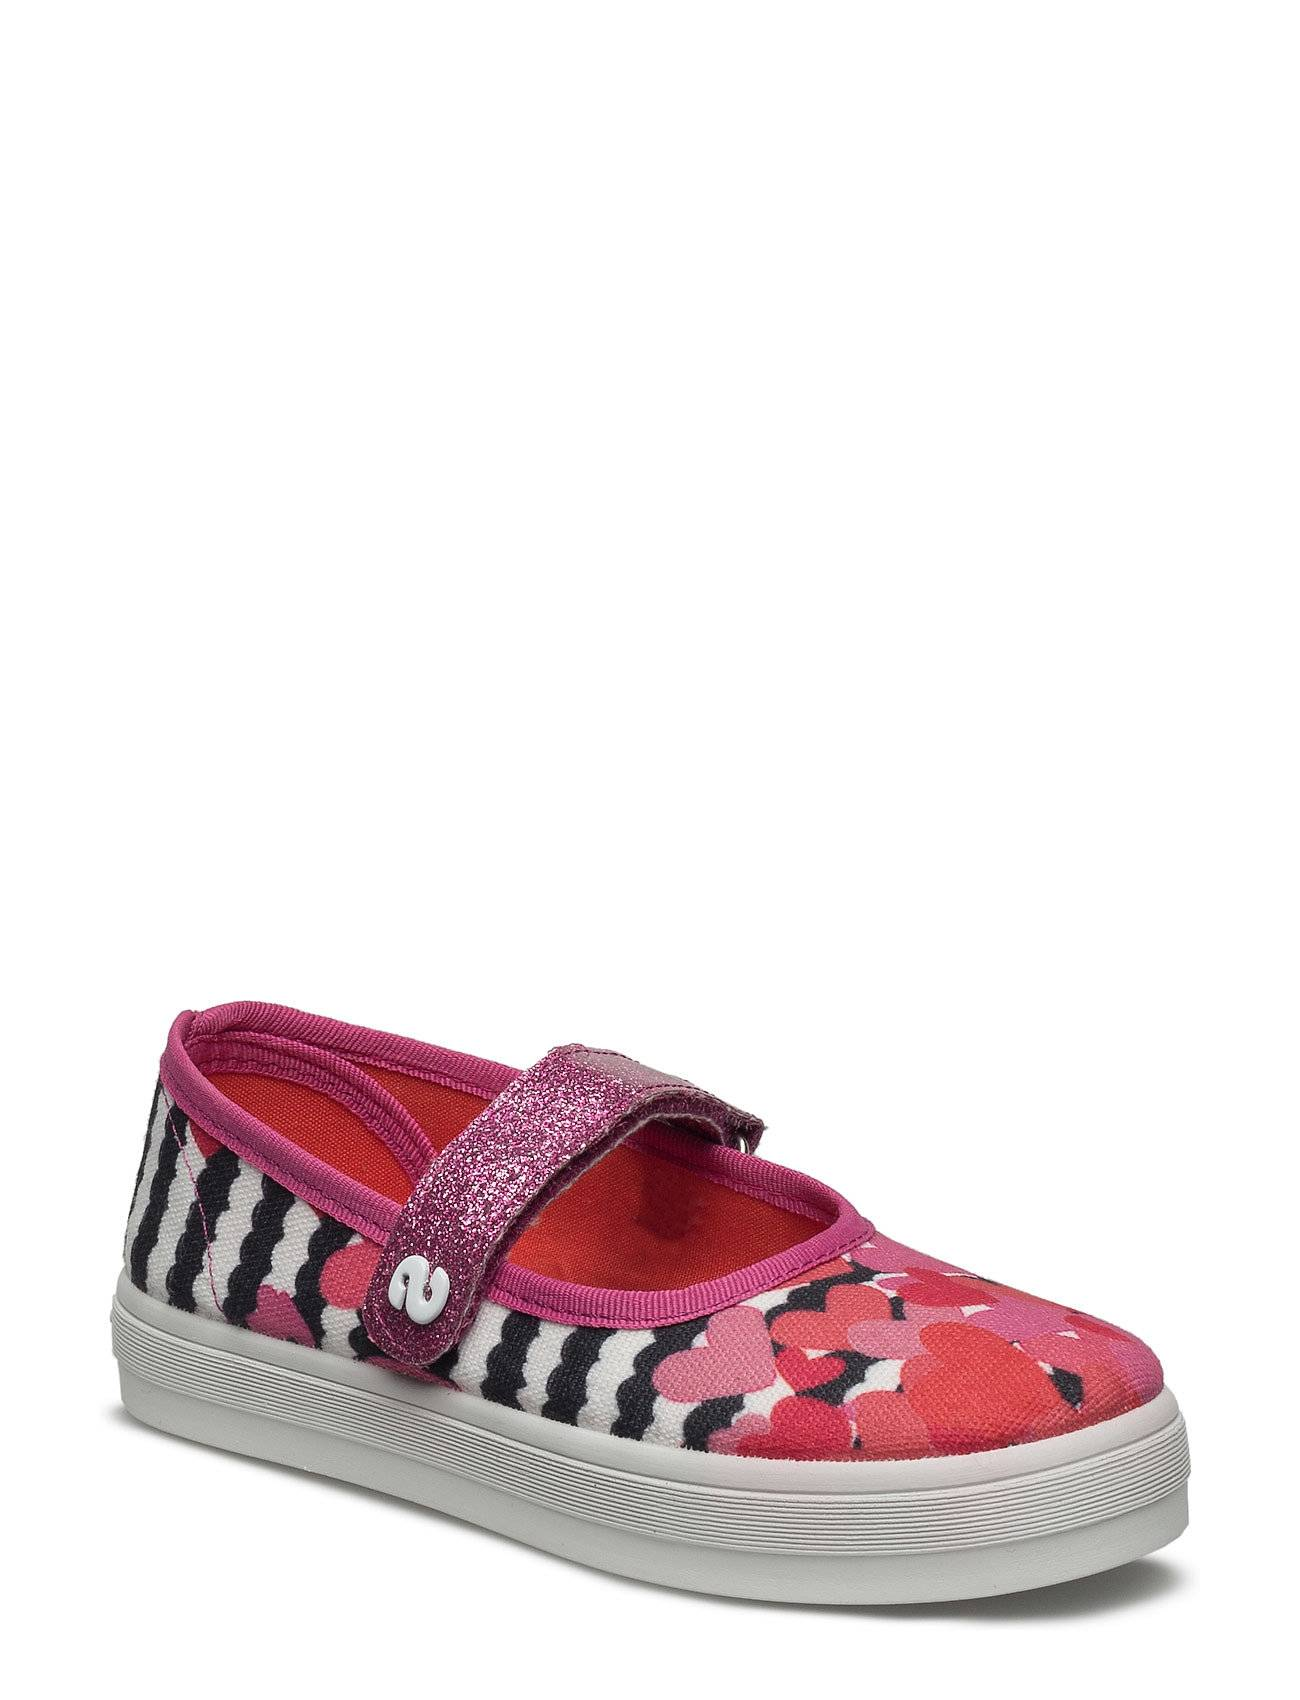 Desigual Shoes Shoes Mary Jan